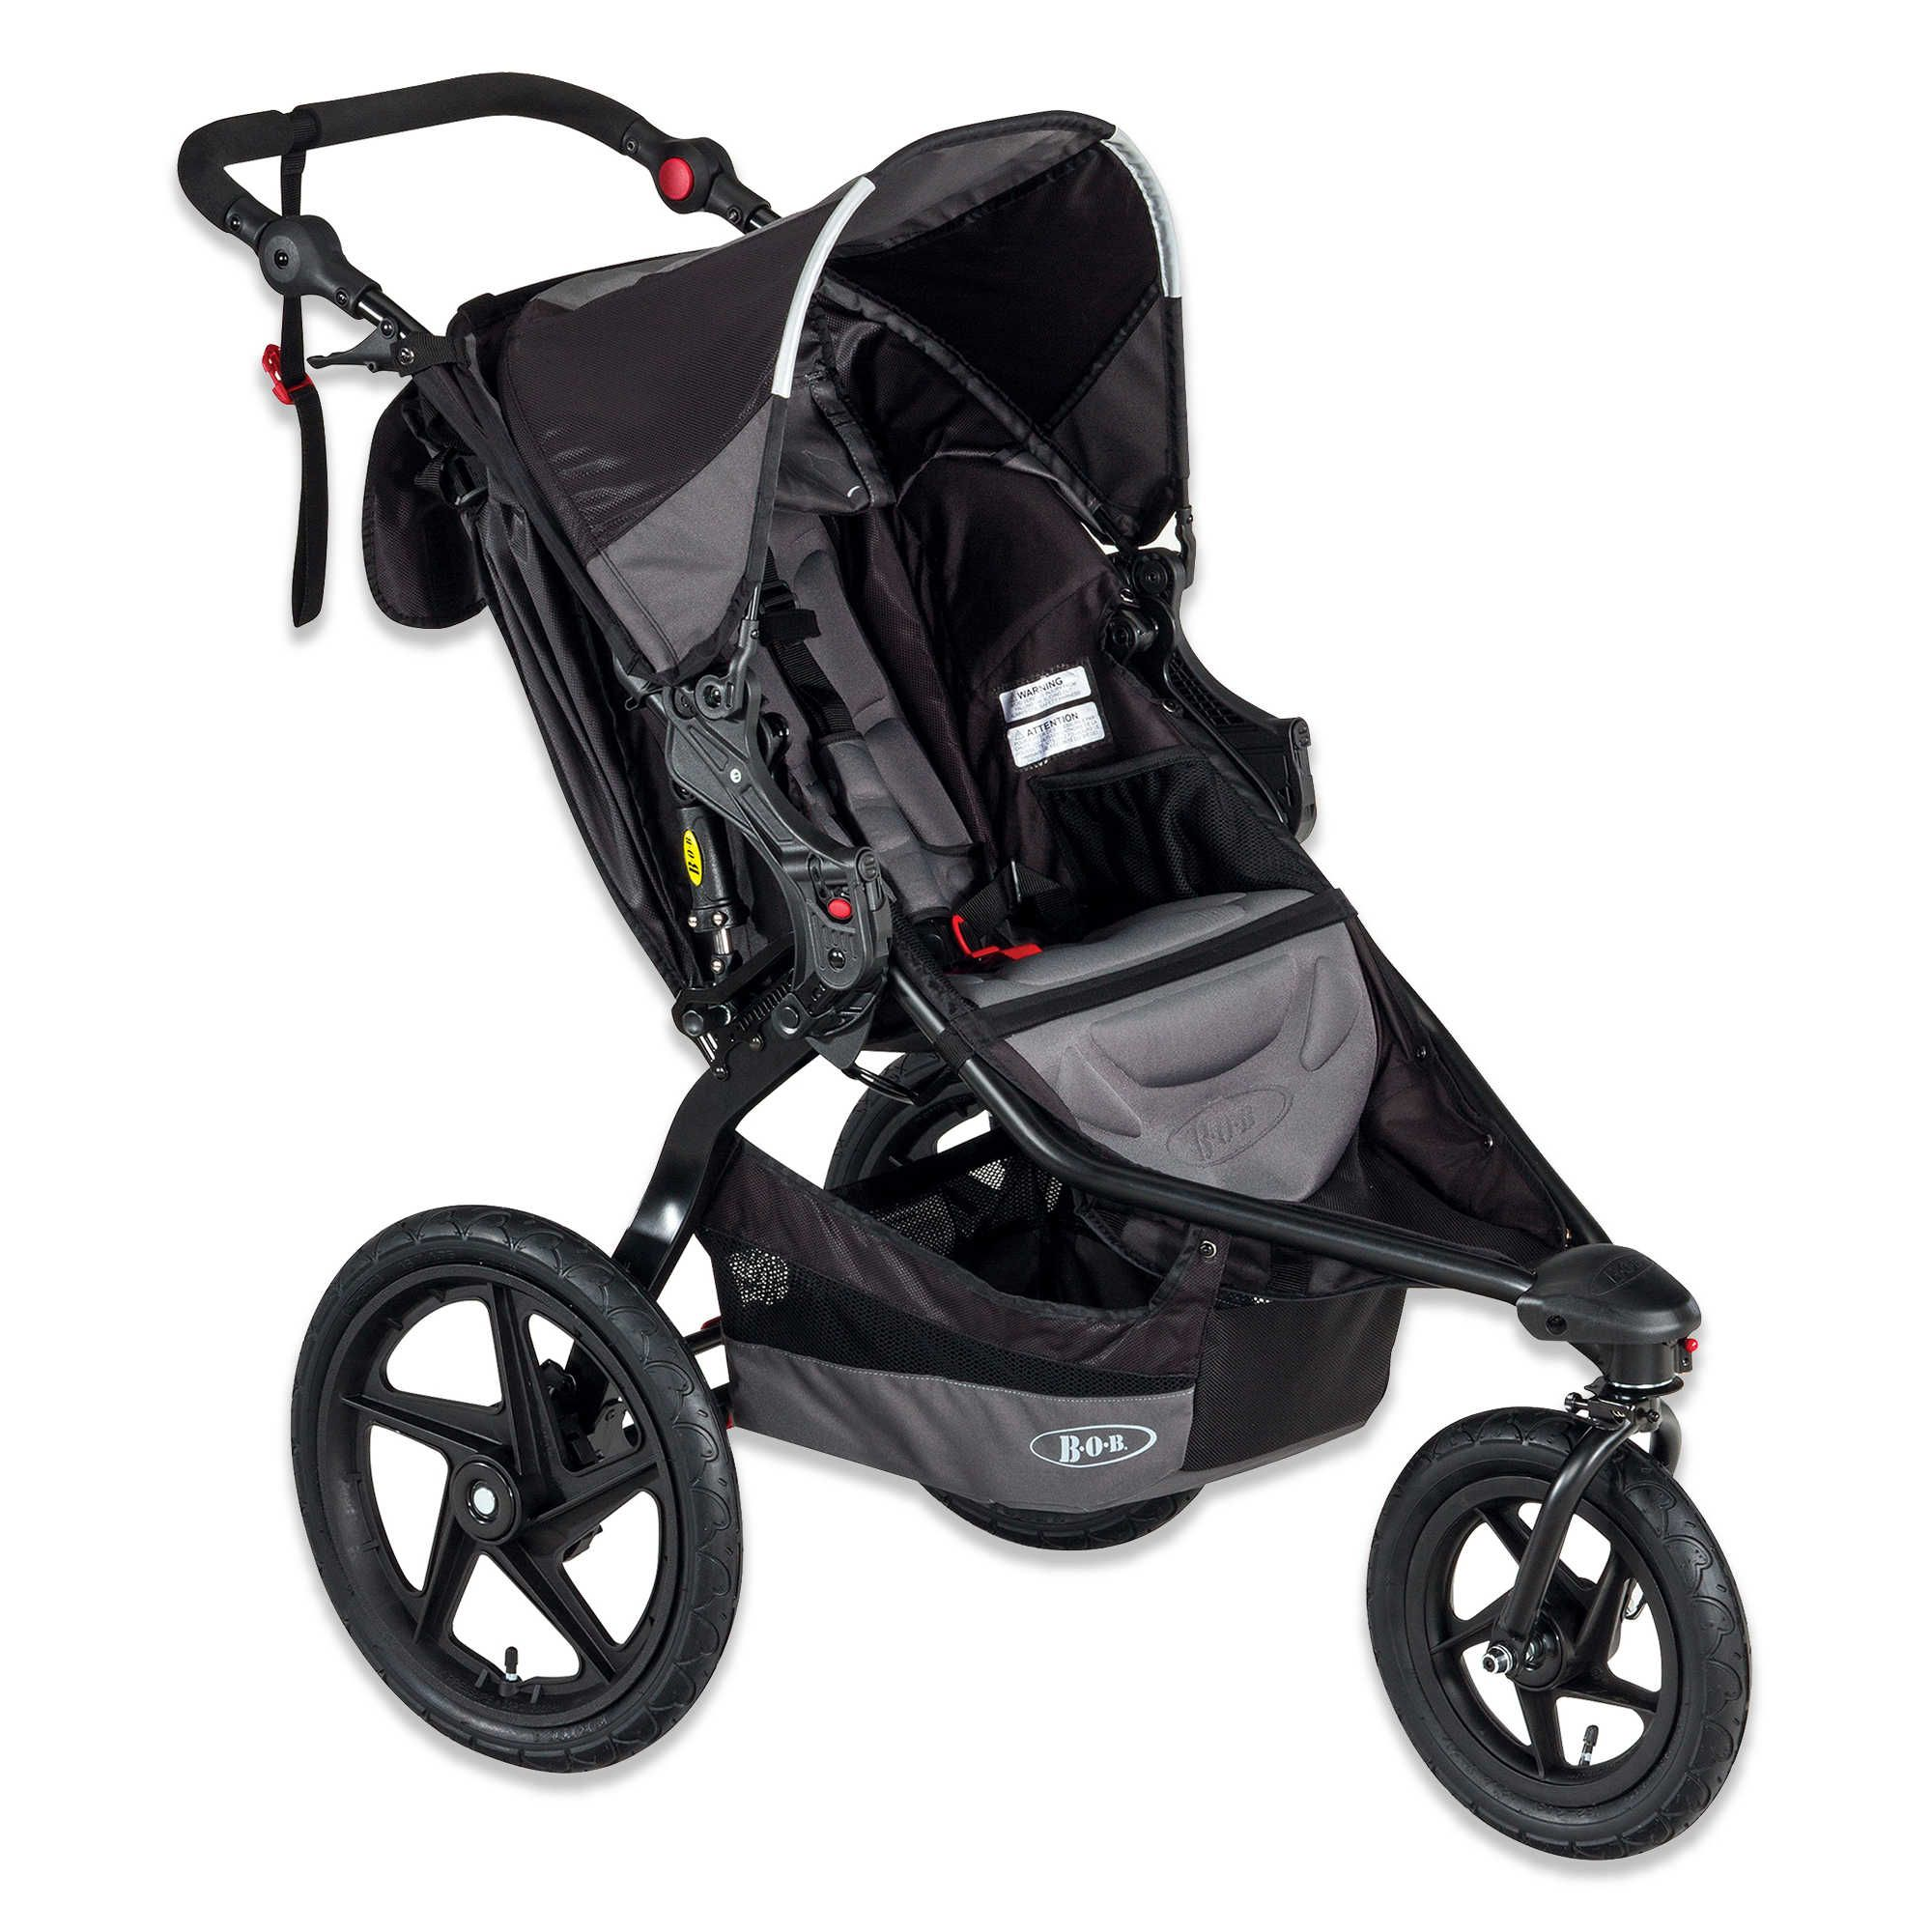 The REVOLUTION FLEX Single Stroller is perfect for even